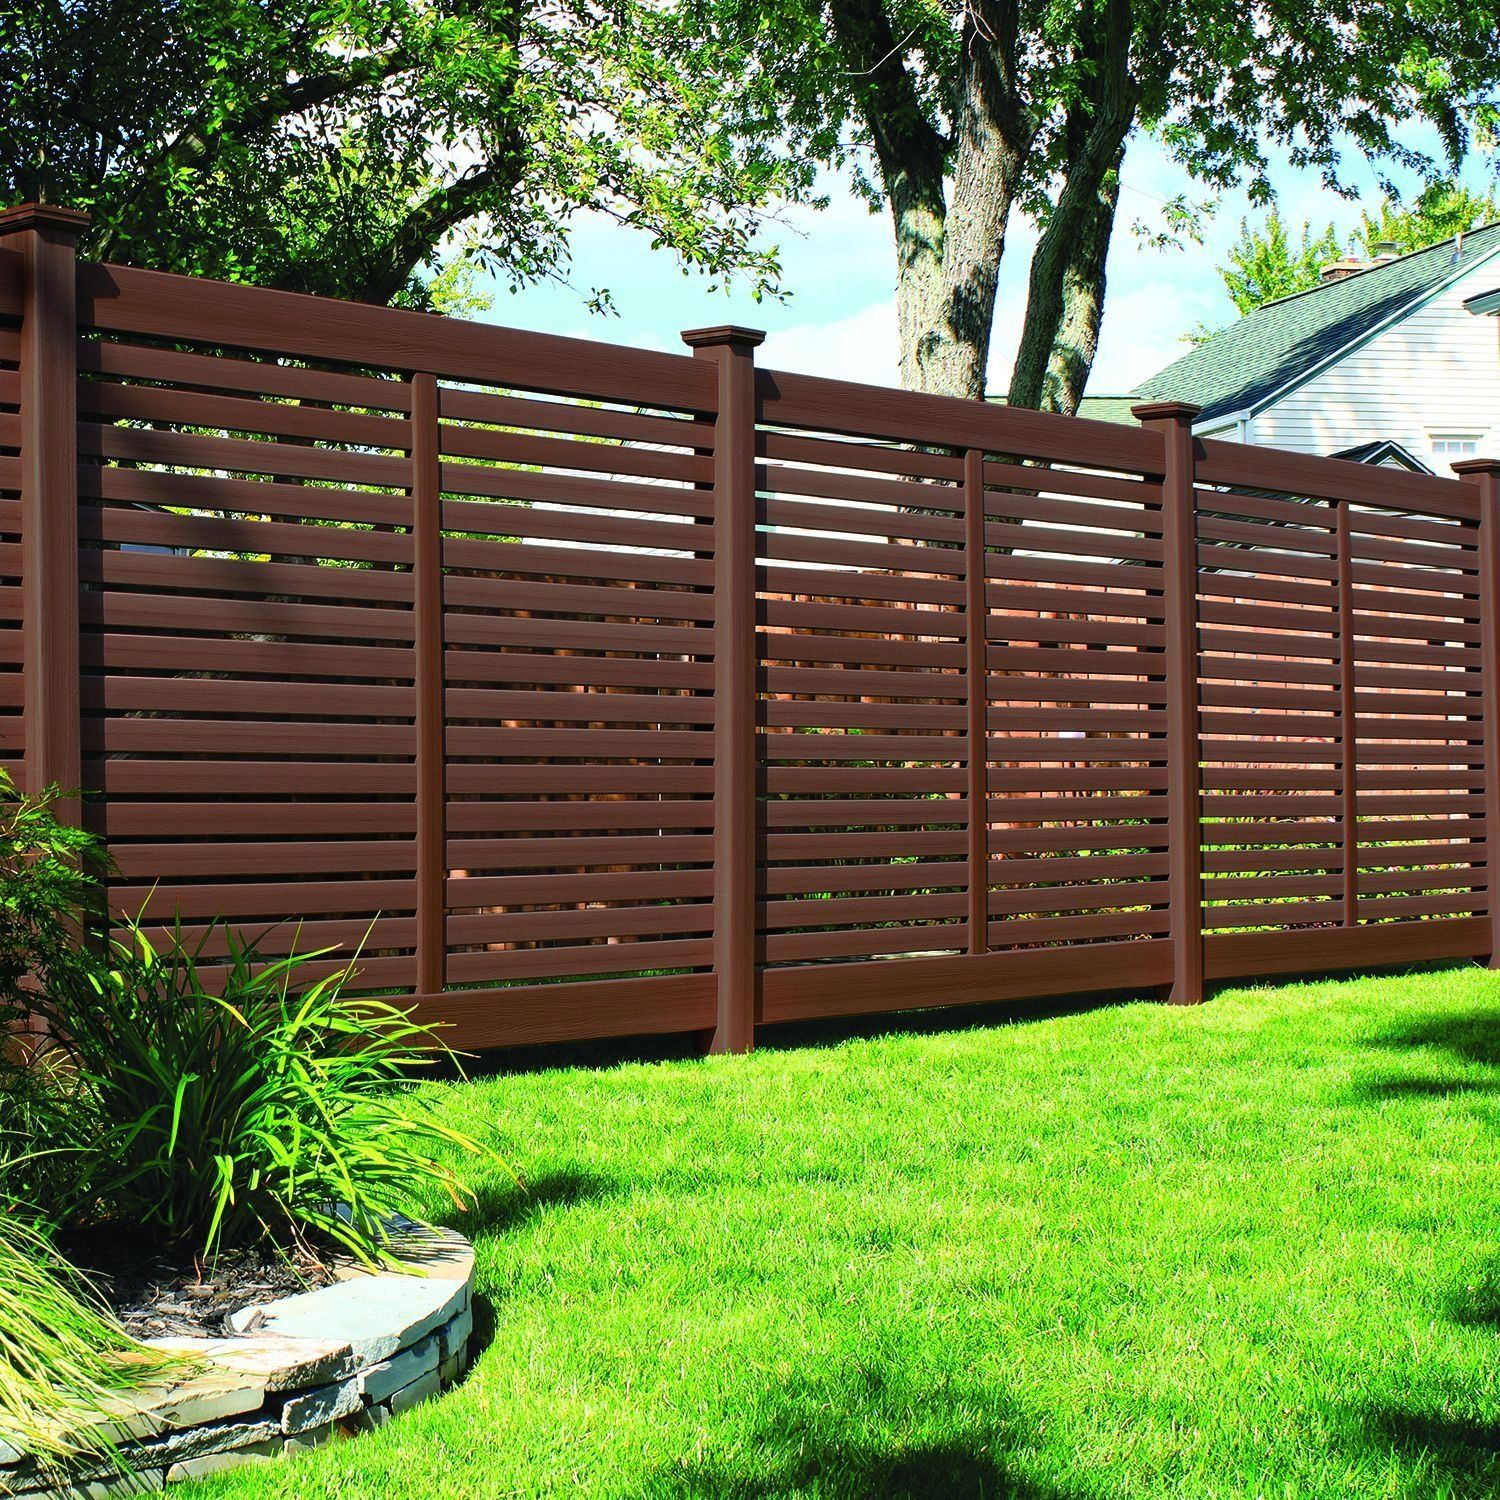 Bufftech Breezewood Select Cedar Vinyl Fence Sections Modern Design In 2020 Vinyl Fence Fence Design Fence Sections